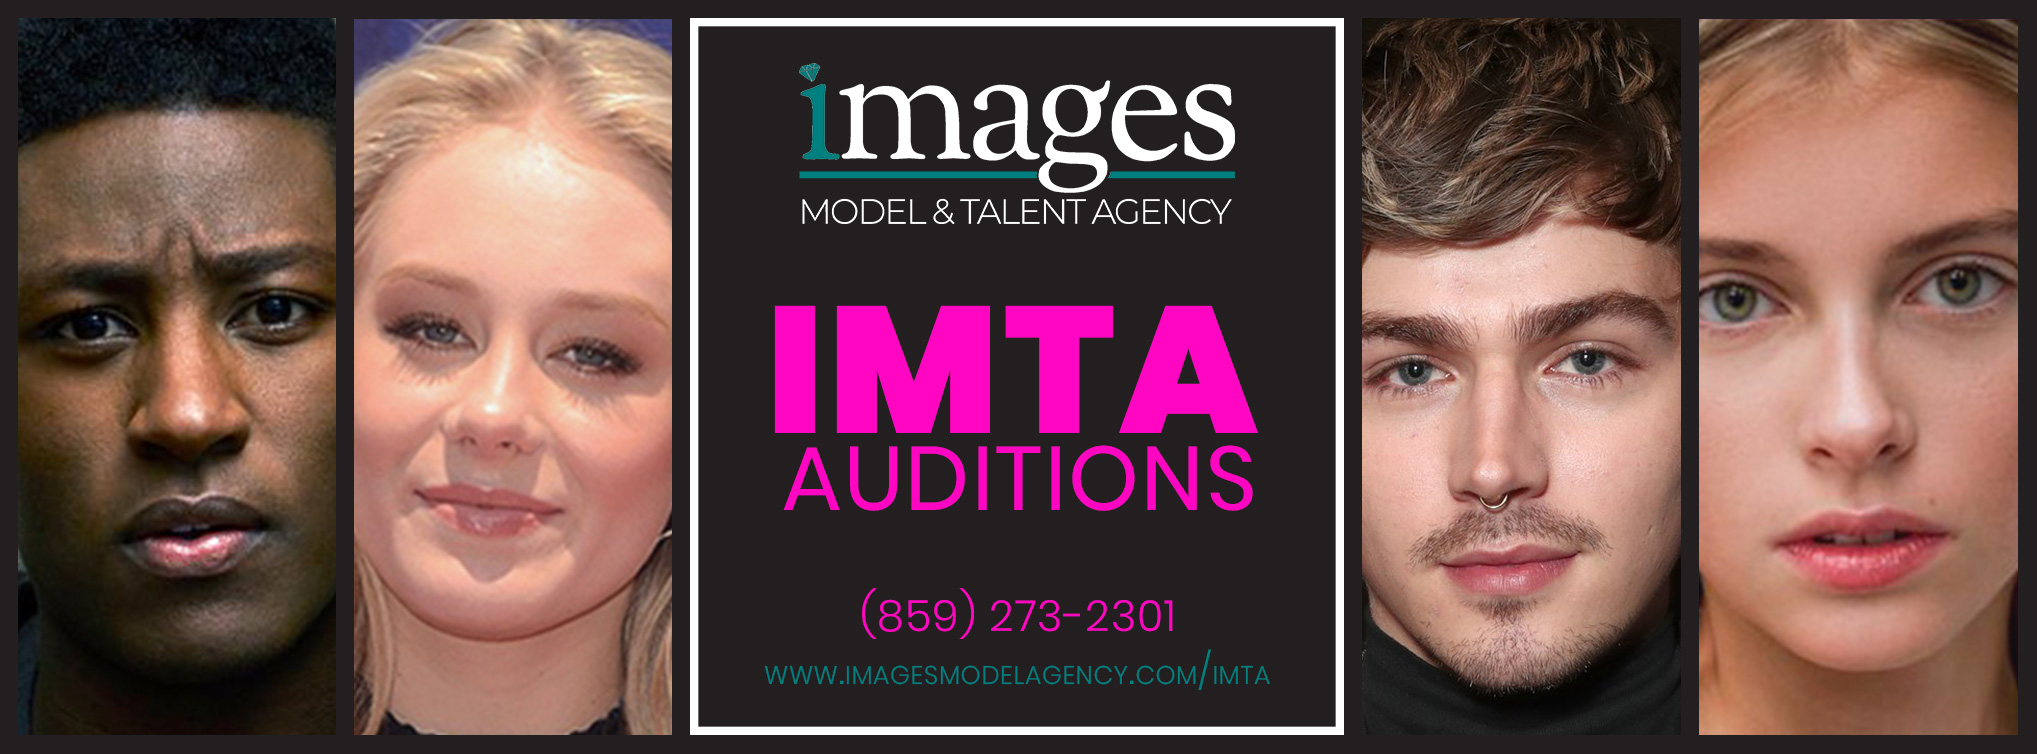 IMTA Auditions Available! Call or complete form today!